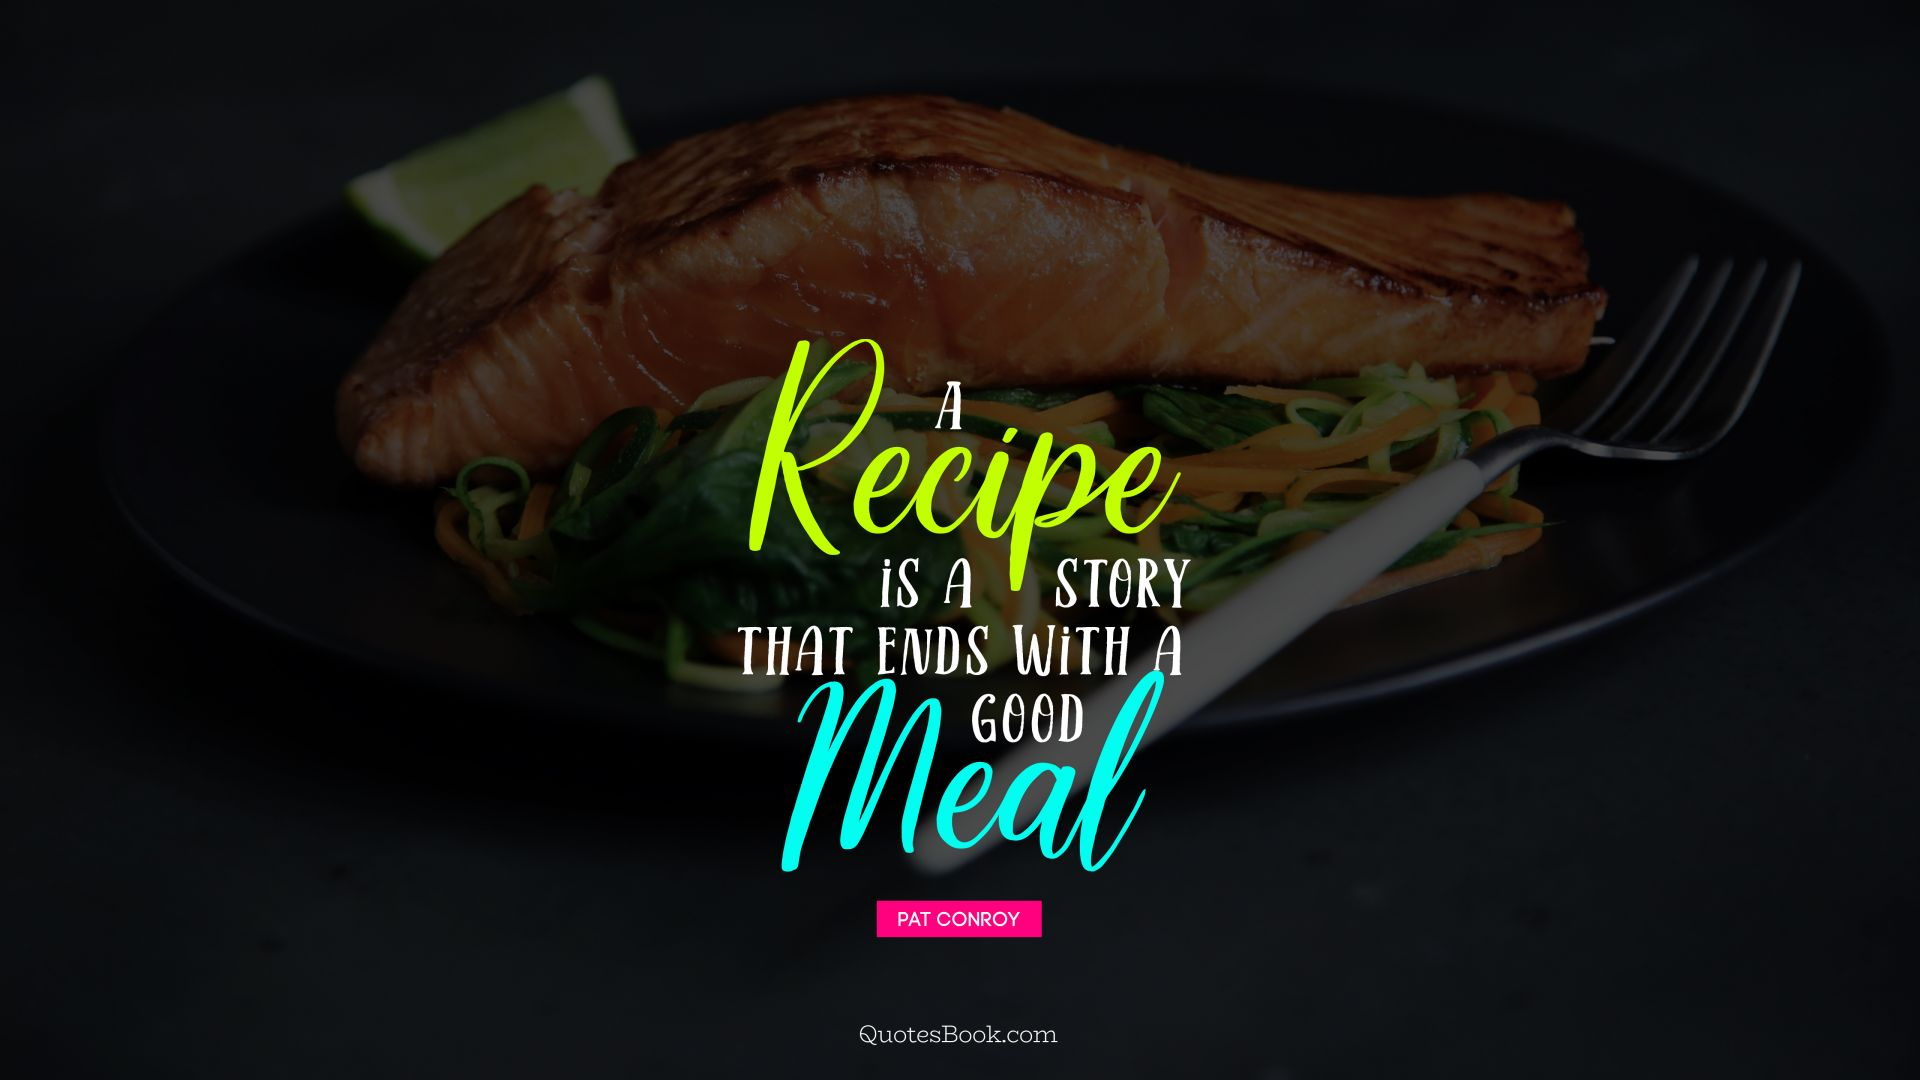 A recipe is a story that ends with a good meal. - Quote by Pat Conroy